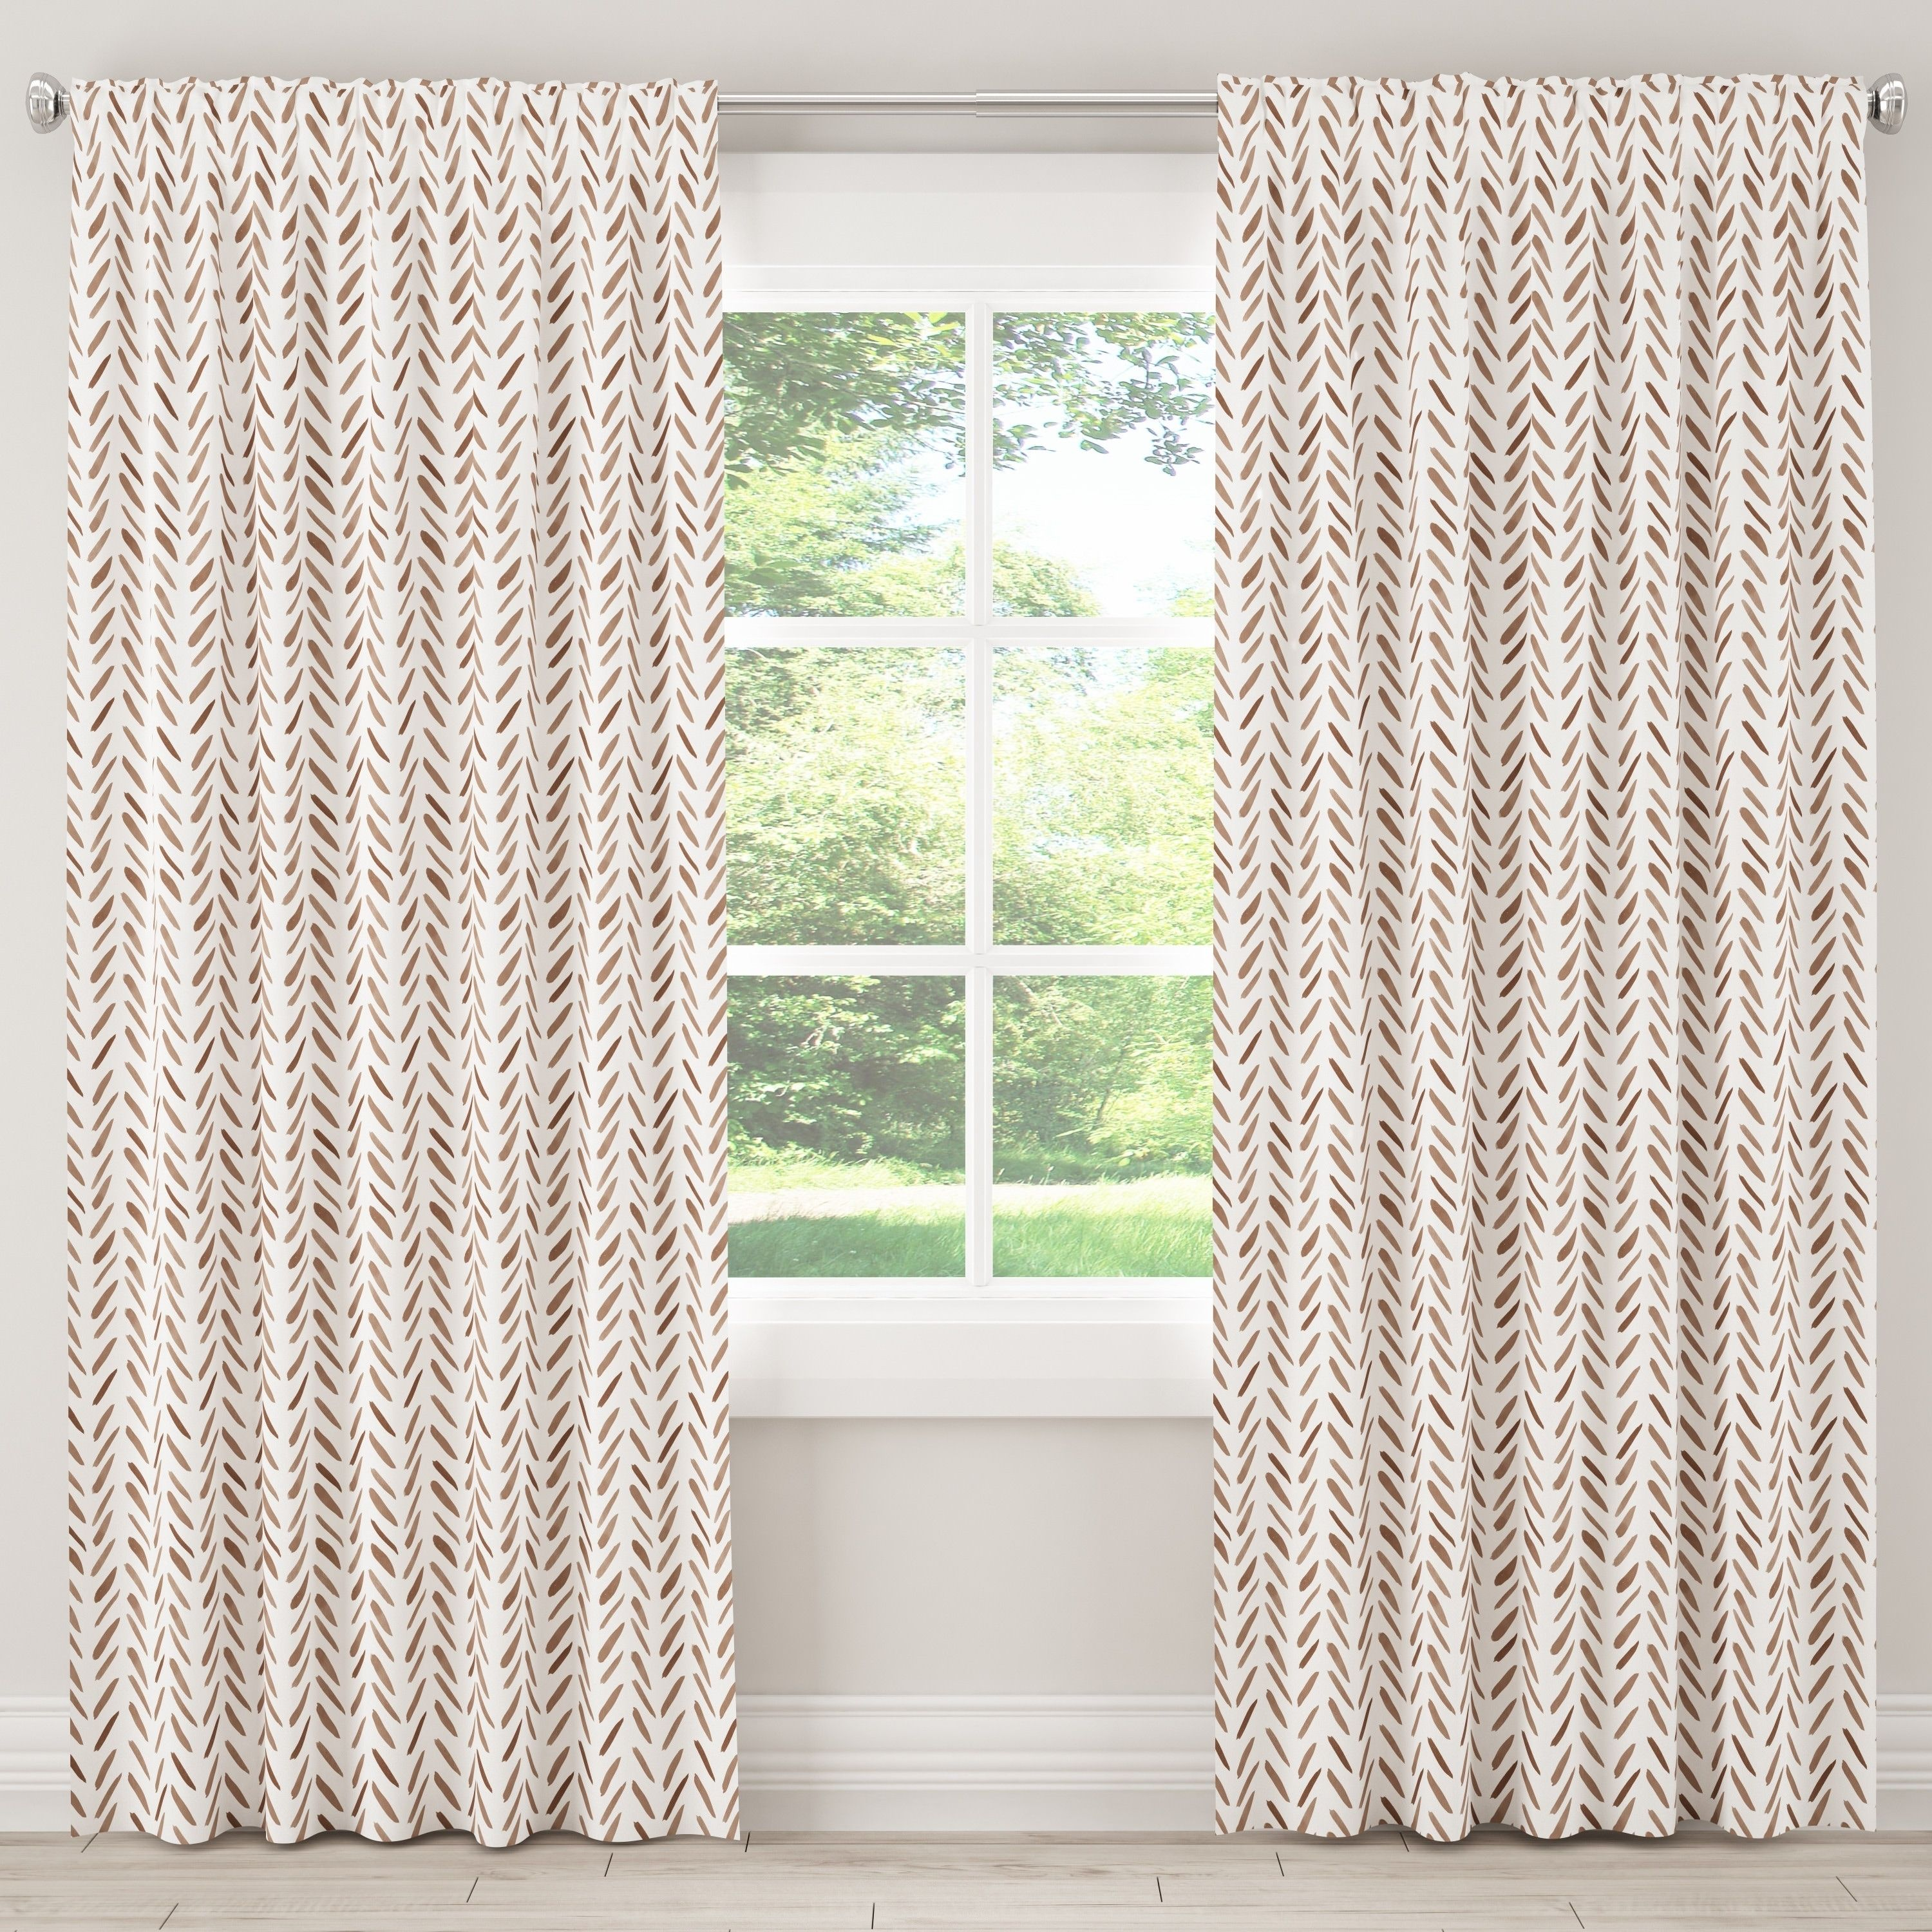 Overstock Com Online Shopping Bedding Furniture Electronics Jewelry Clothing More Cool Curtains The Curated Nomad Curtains